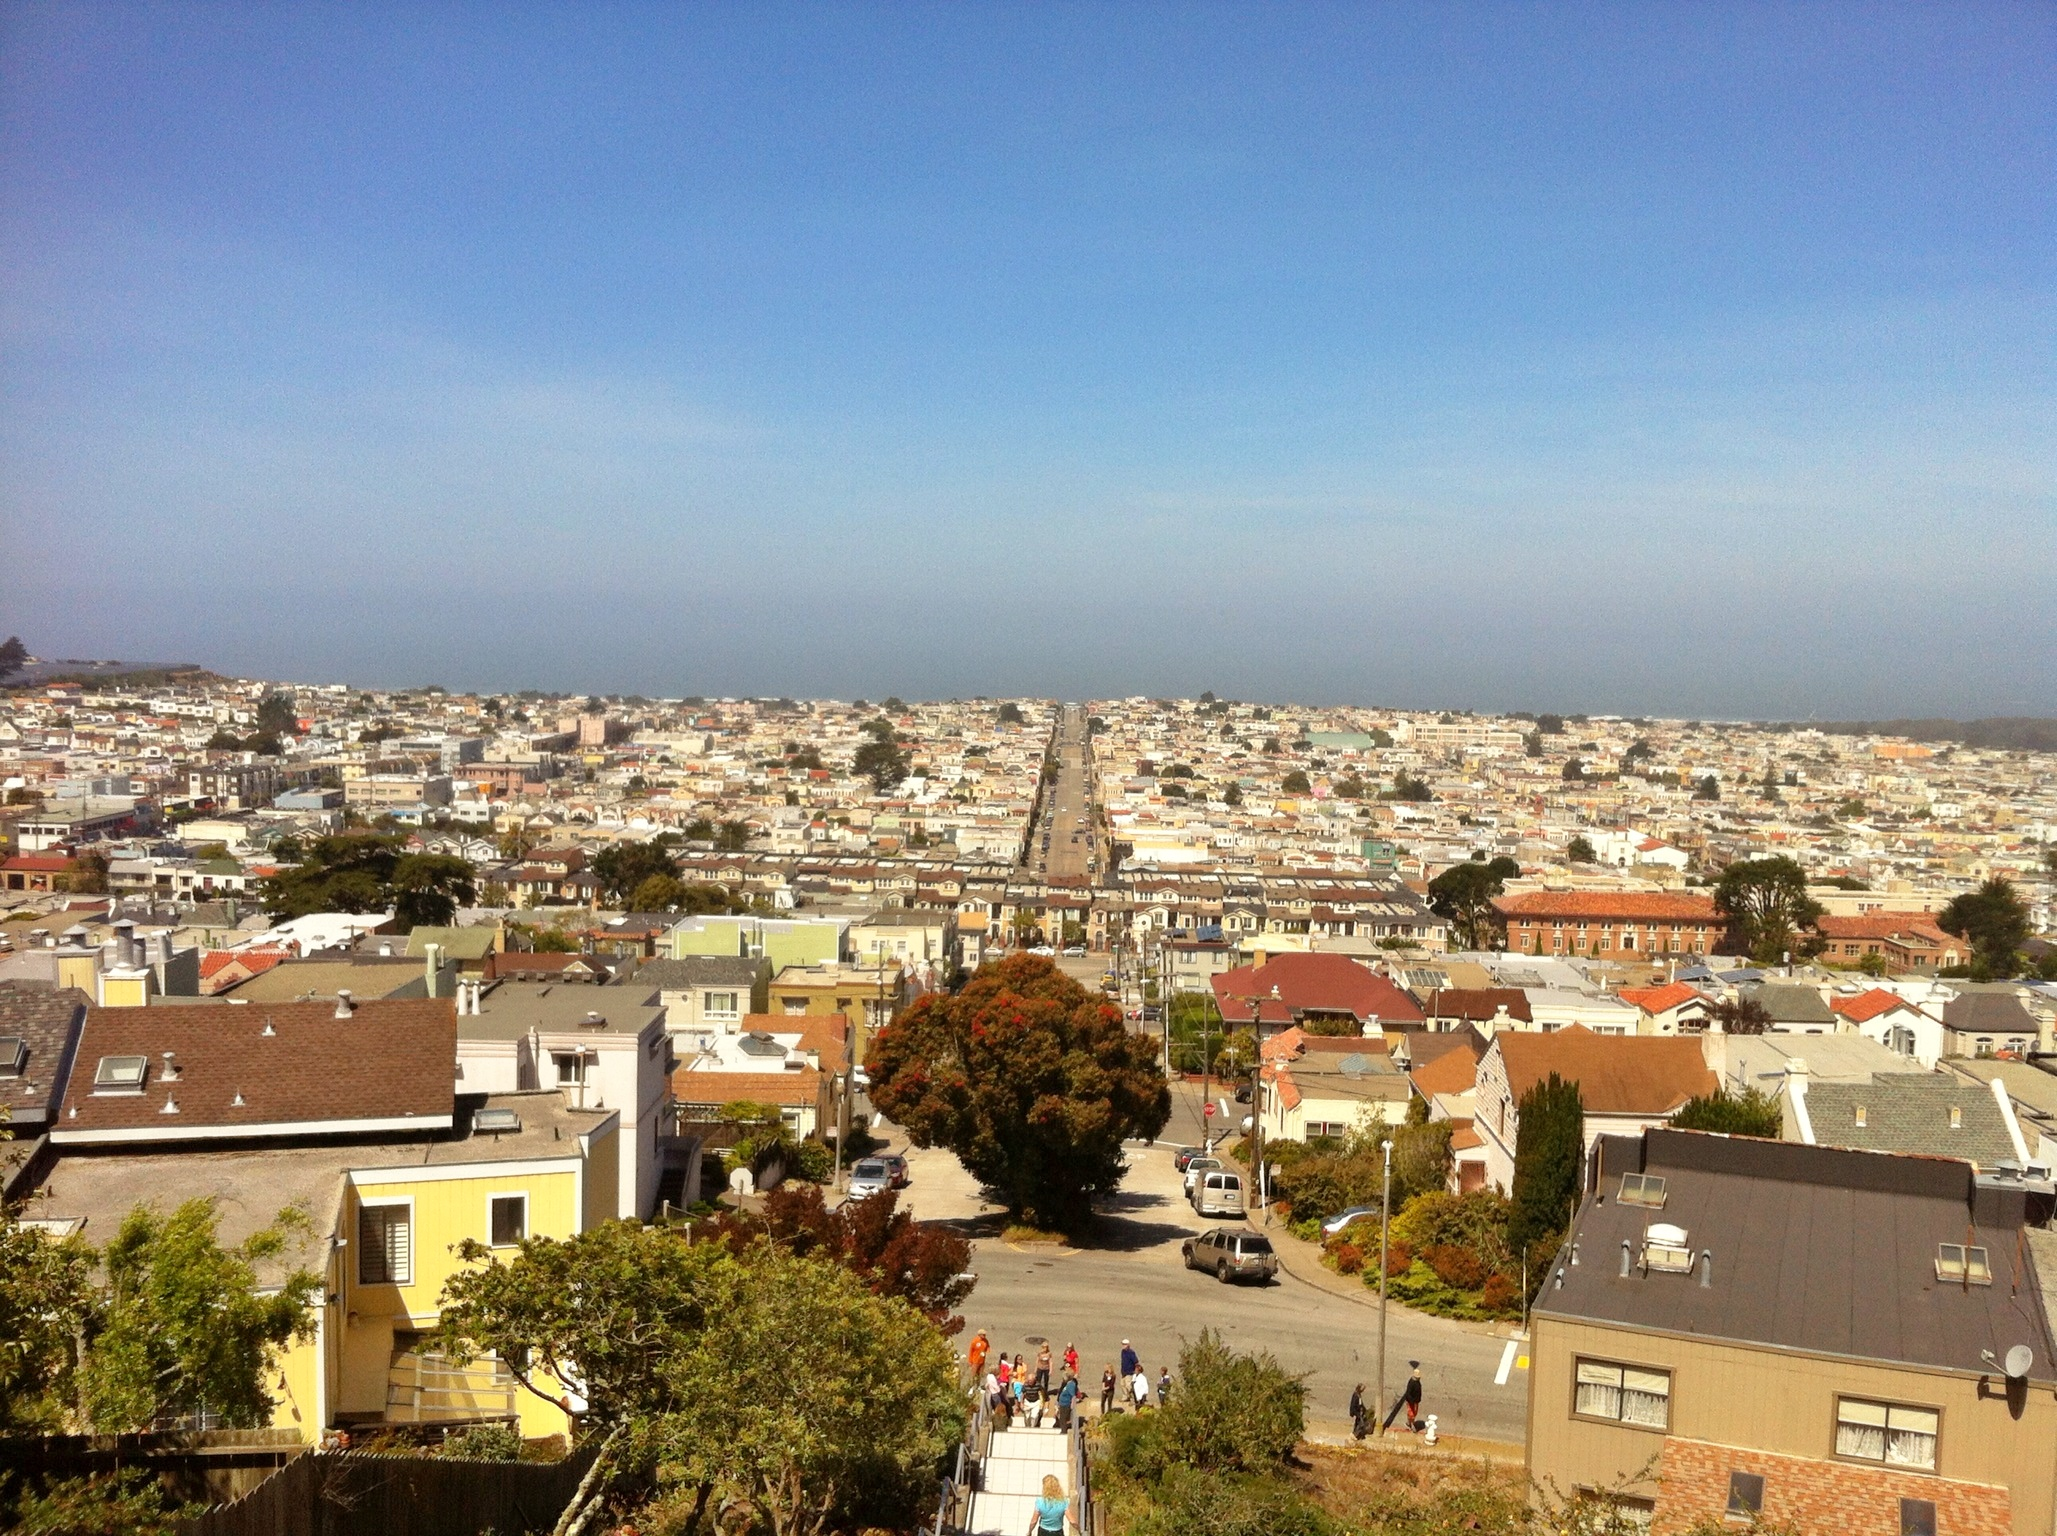 View from the top of the steps